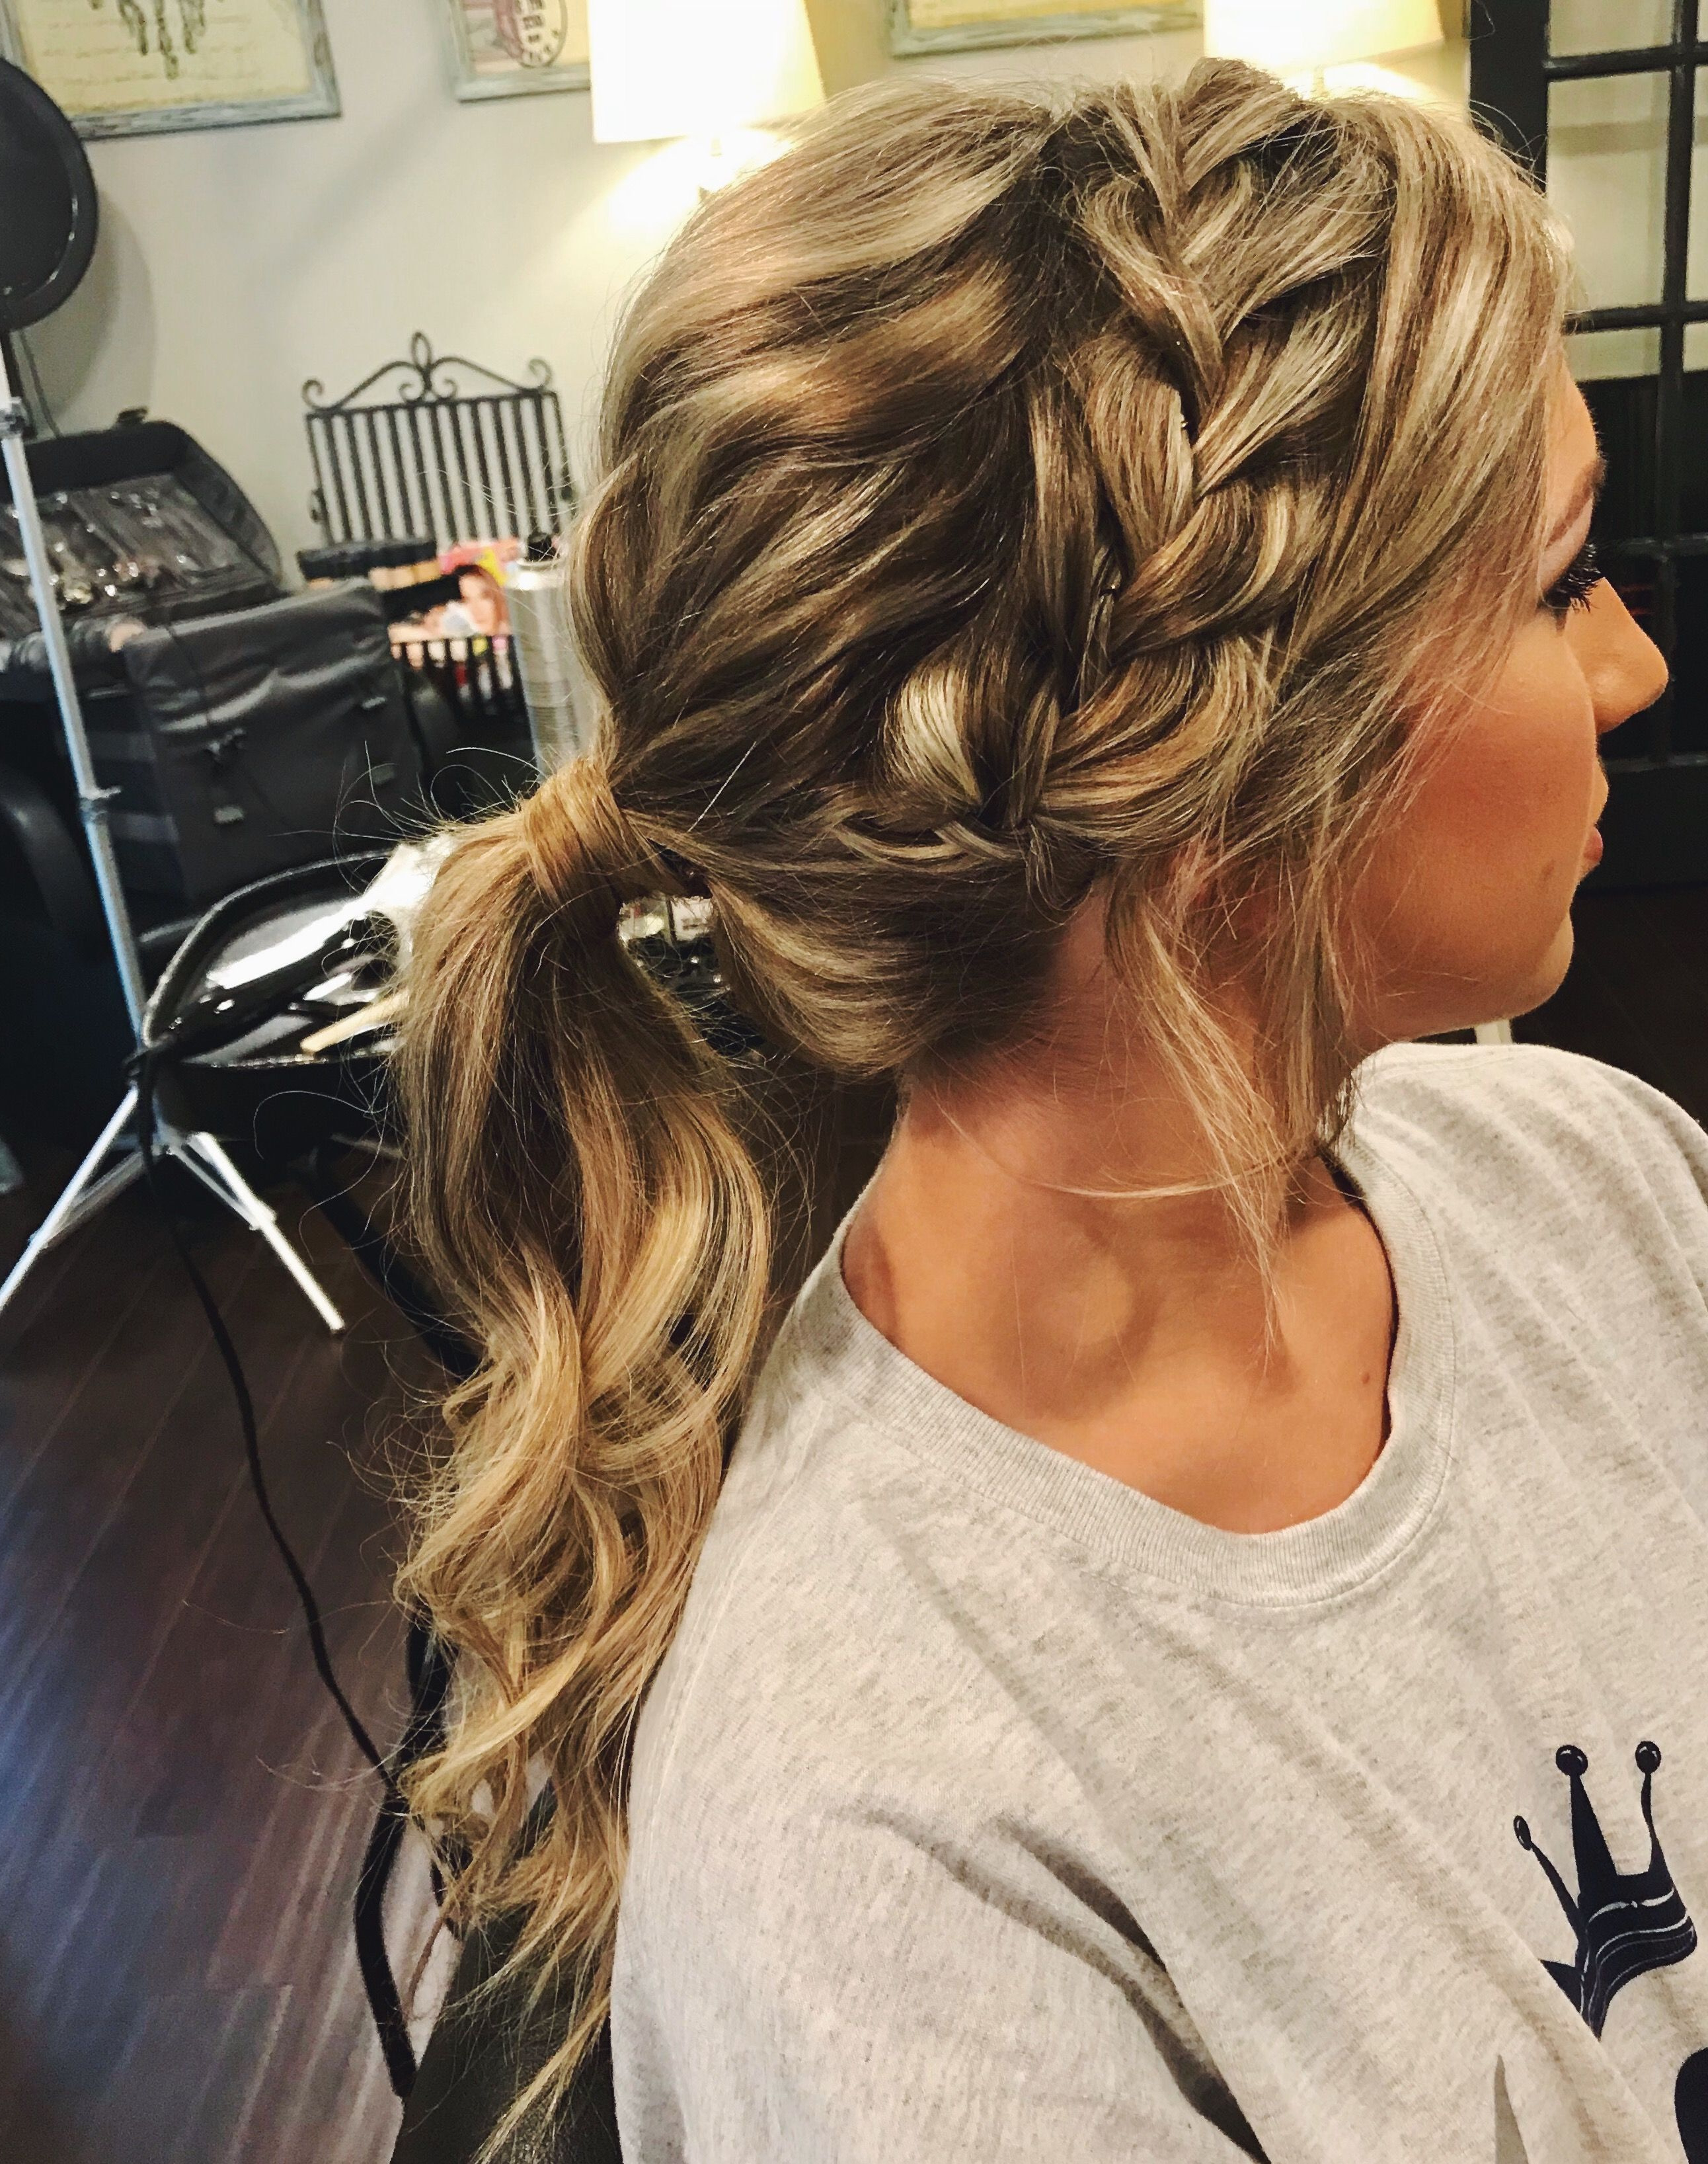 Recent Chic Ponytail Hairstyles Ponytail Hairstyles Intended For Fashion : Magnificent Chic Ponytail Hairstyles With Added Volume (Gallery 10 of 20)